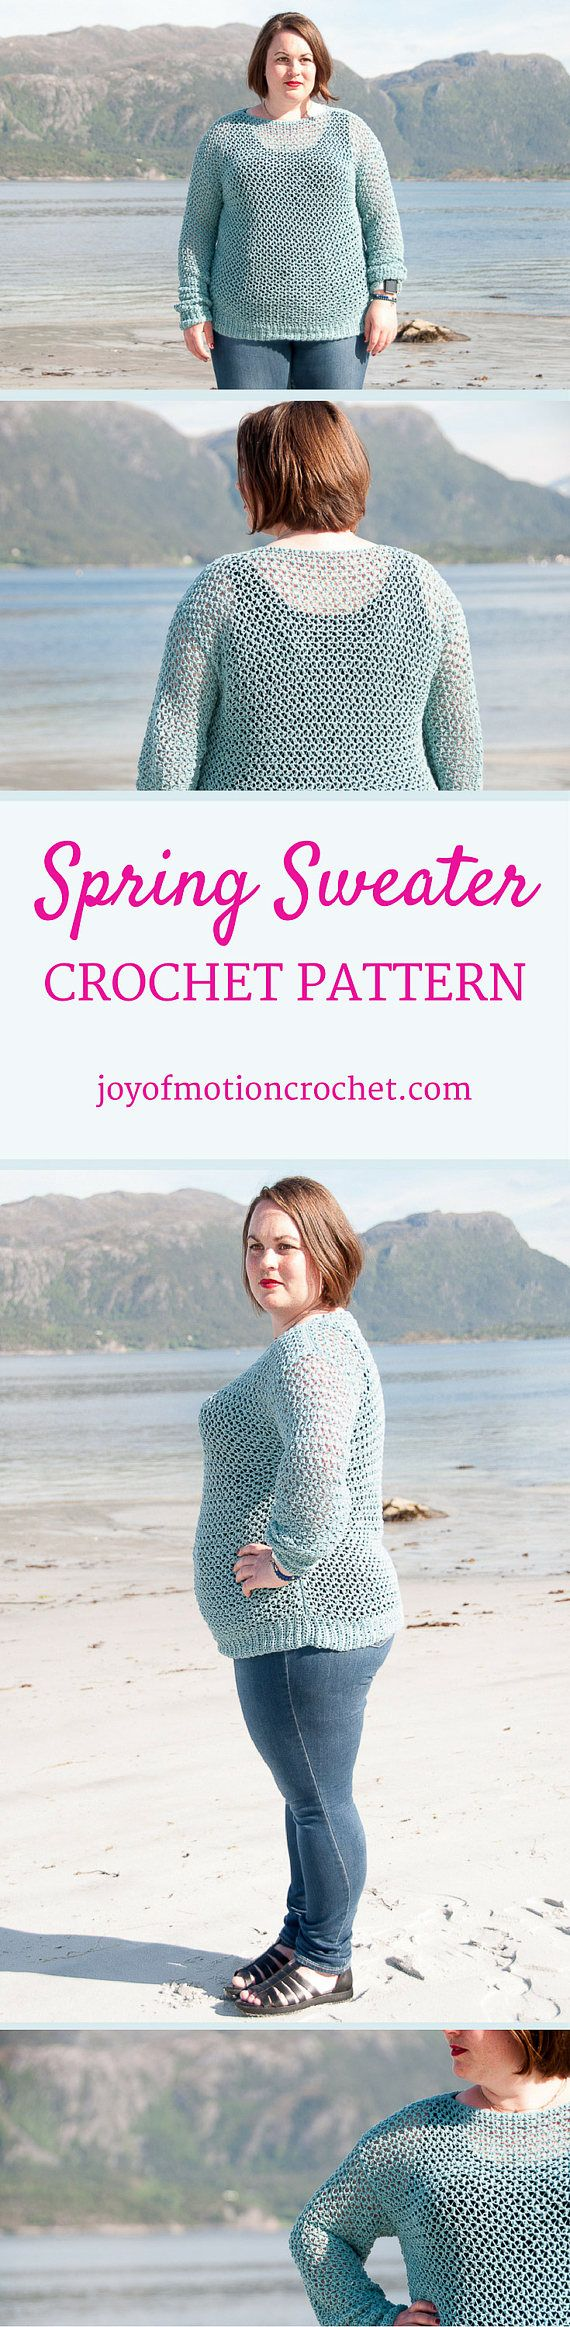 Spring Sweater Crochet Pattern  ★ Crochet pattern for the Spring Sweater, a lacy & quick sweater pattern. ★ Perfect to make for yourself for the spring & summer season. ★ S – XL. ★ Skill level: EASY ★ Language: English / US crochet terms.  The Spring sweater crochet pattern are a easy sweater crochet pattern that's perfect for spring. It's designed with cotton yarn, and this sweater will be your favorite throughout the season. It is quick to make, as there is no shaping in the bo...